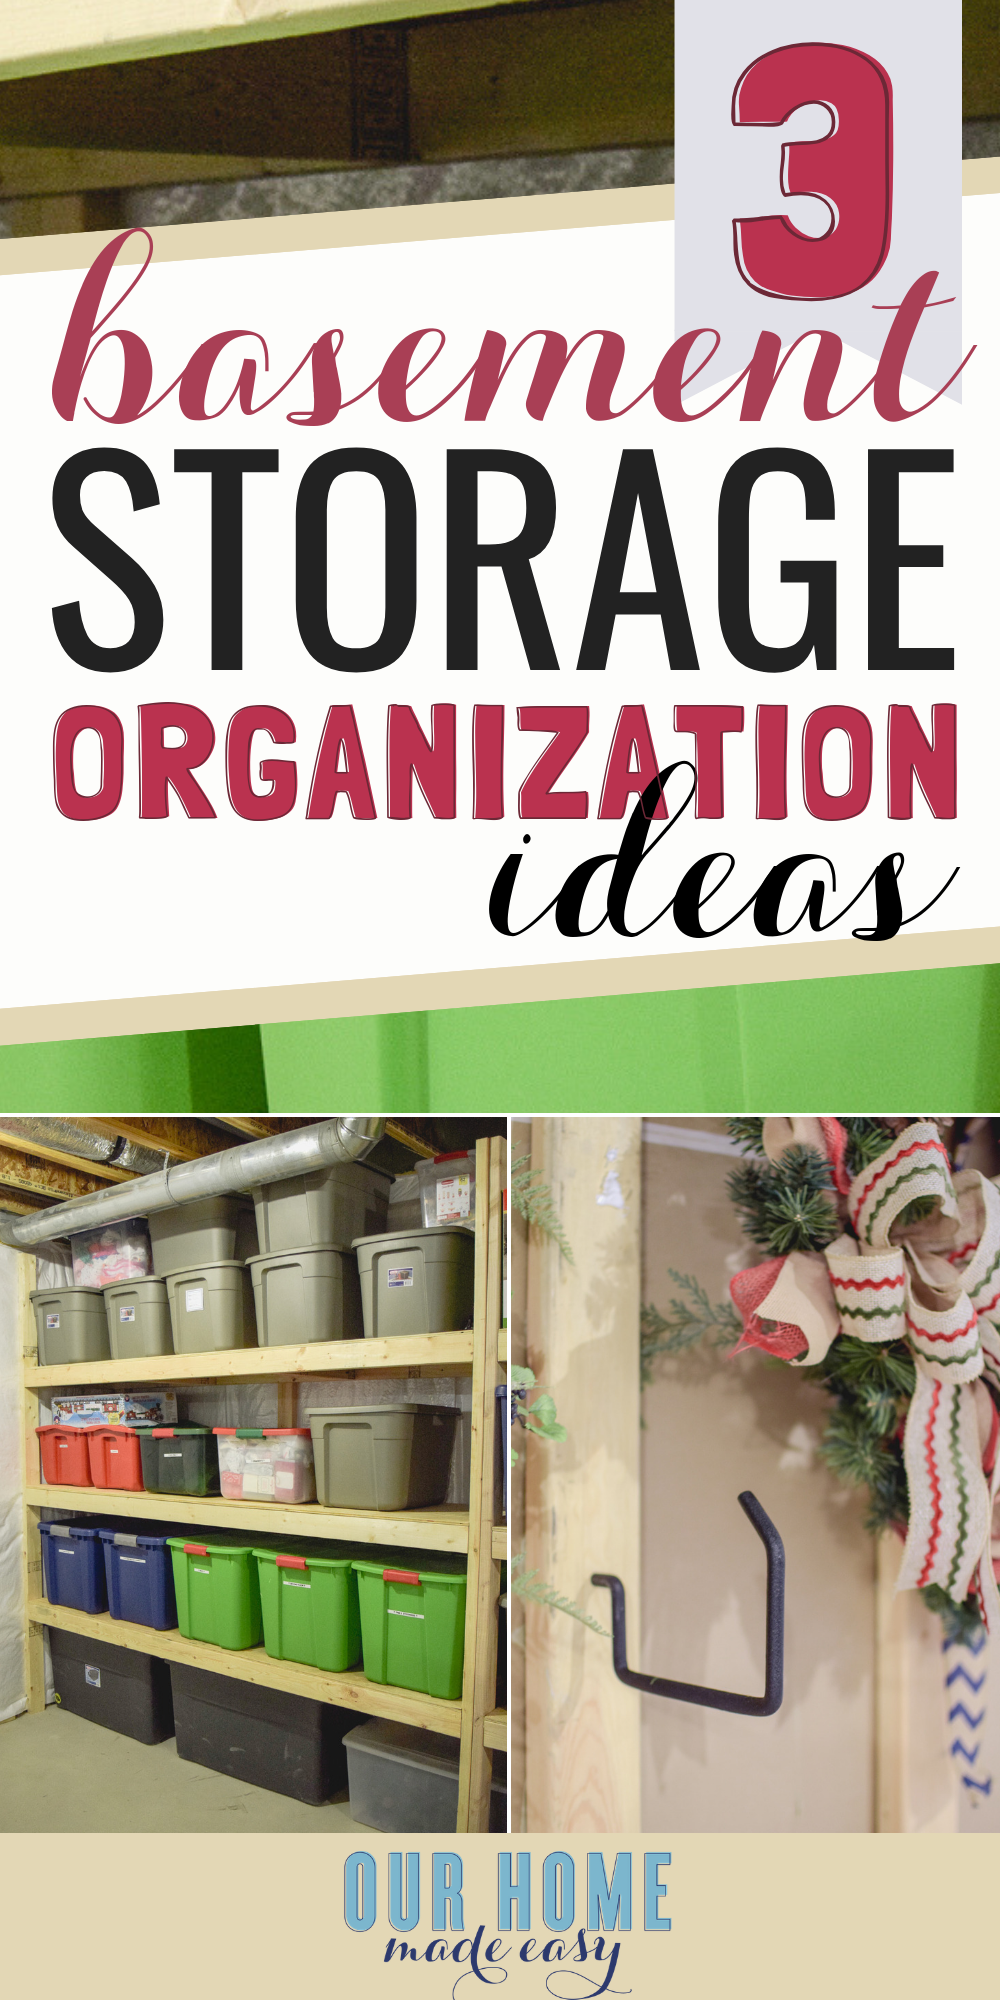 Easy Basement Storage Ideas: Get started on clearing the clutter with these storage ideas and tricks